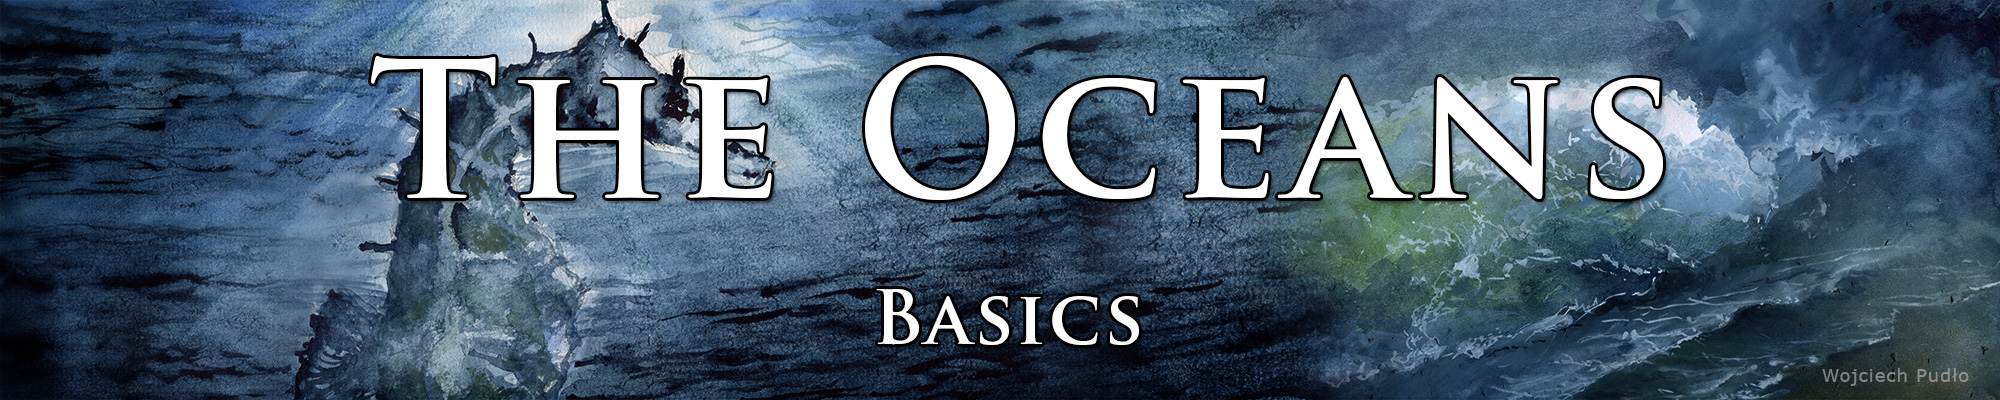 Topic: The Oceans. Basics.